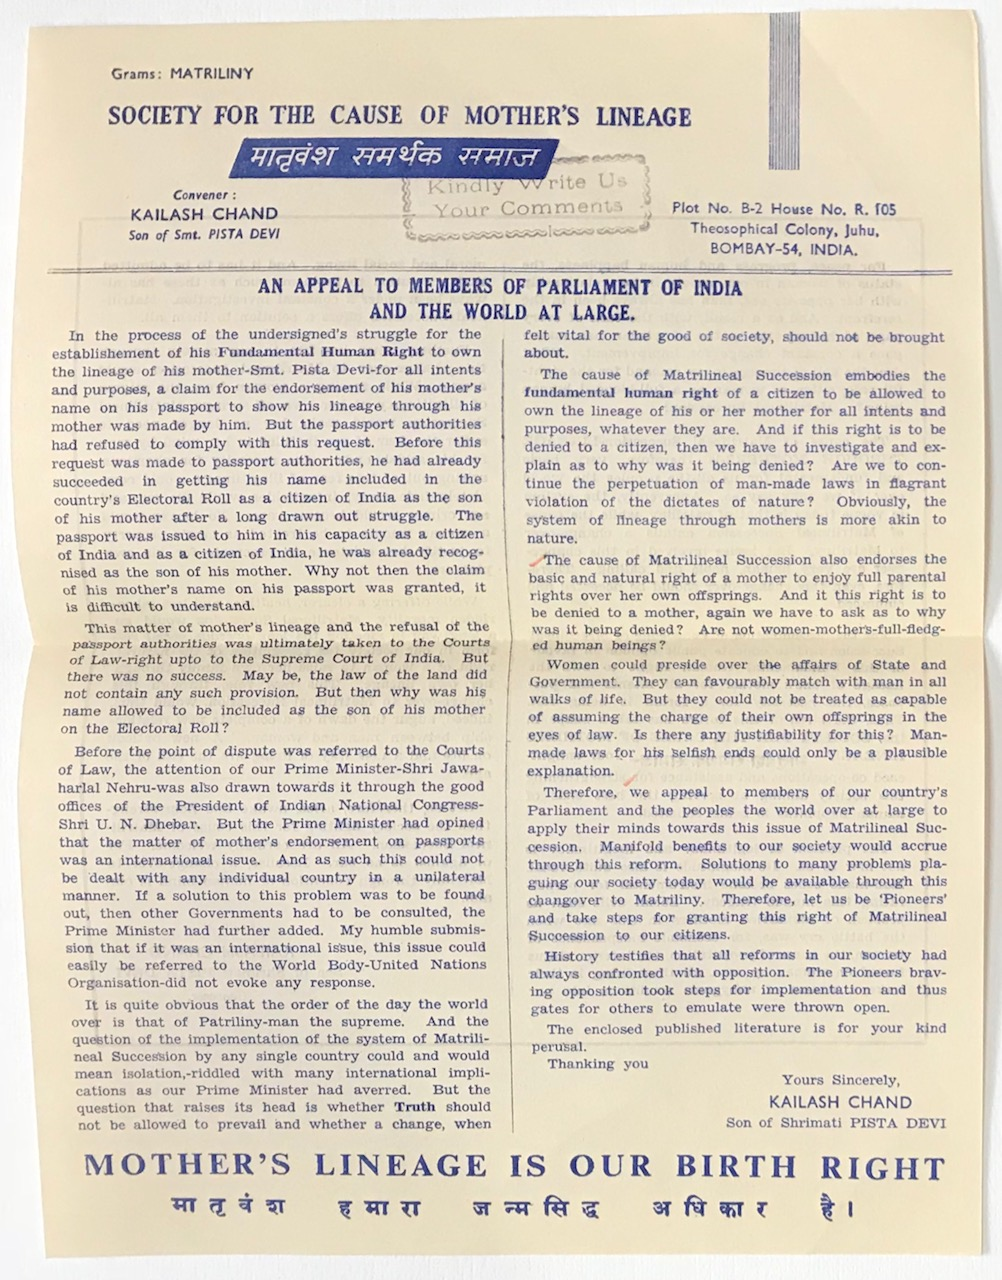 An appeal to members of Parliament of India and the world at large handbill  by Kailash Chand on Bolerium Books